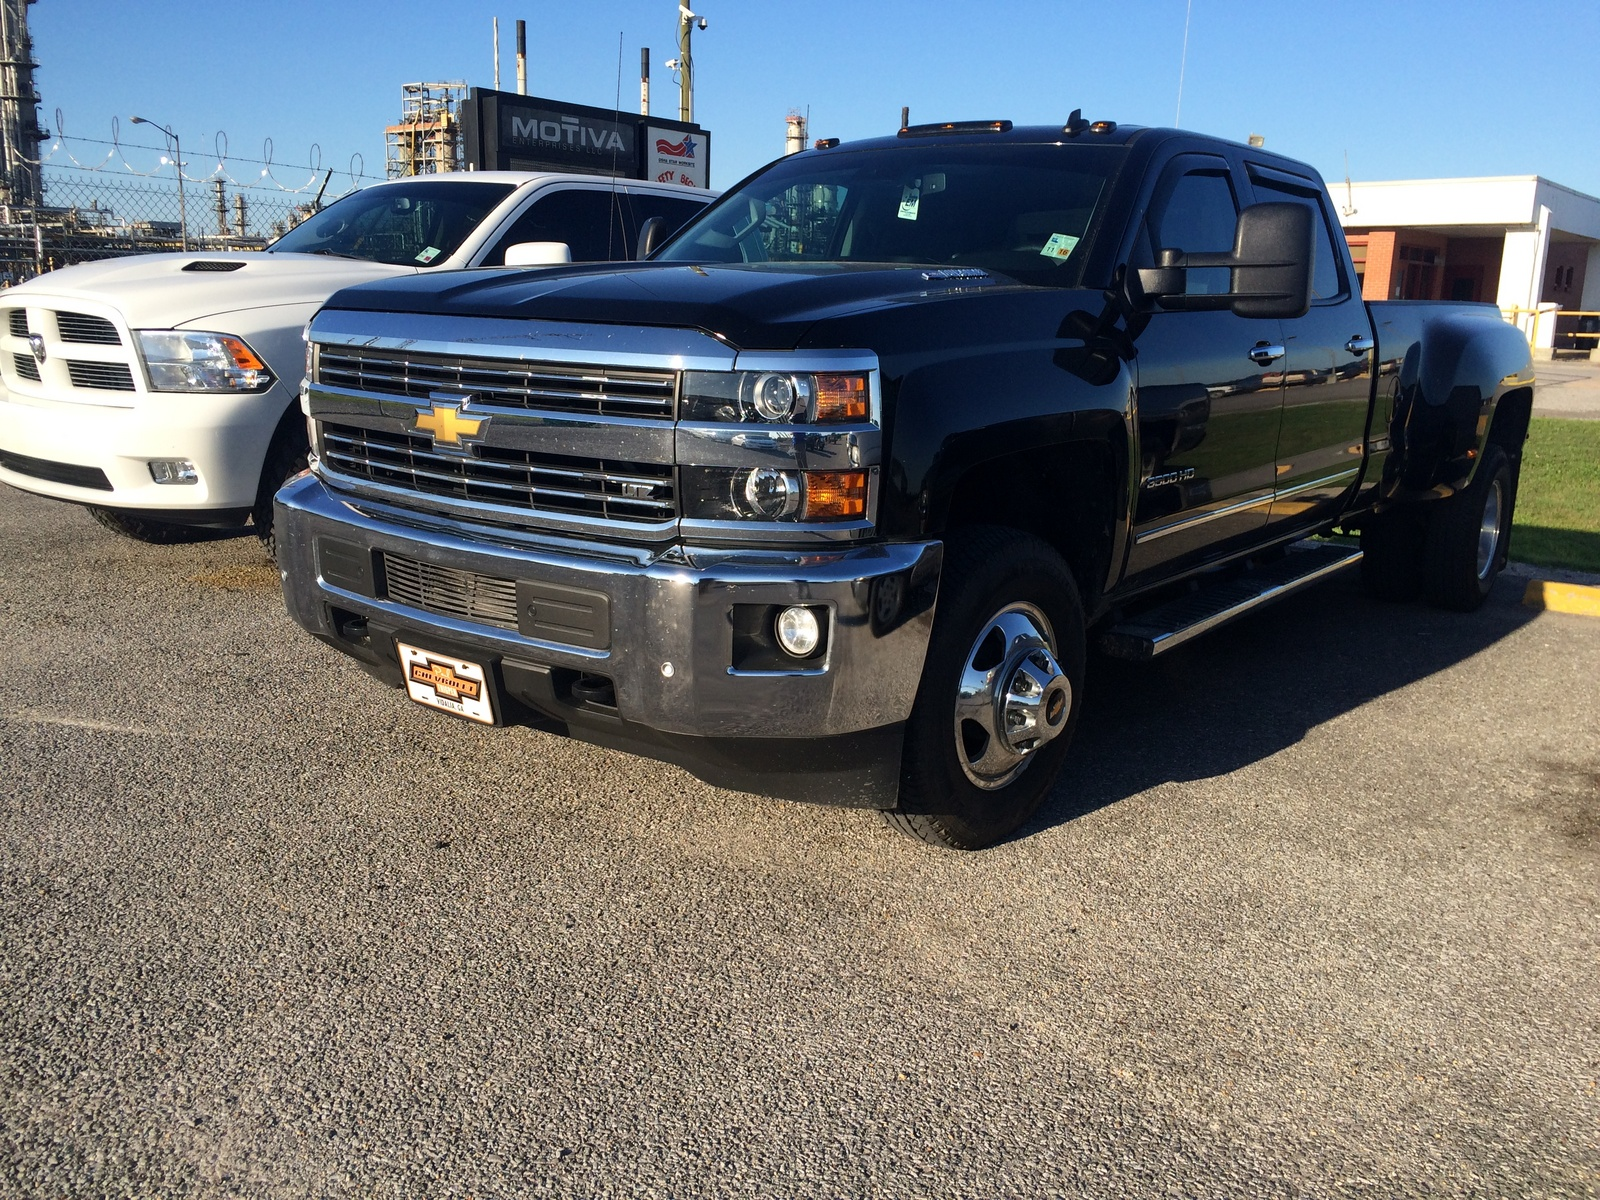 2014 silverado 3500 hd ltz crew cab pictures to pin on pinterest. Black Bedroom Furniture Sets. Home Design Ideas